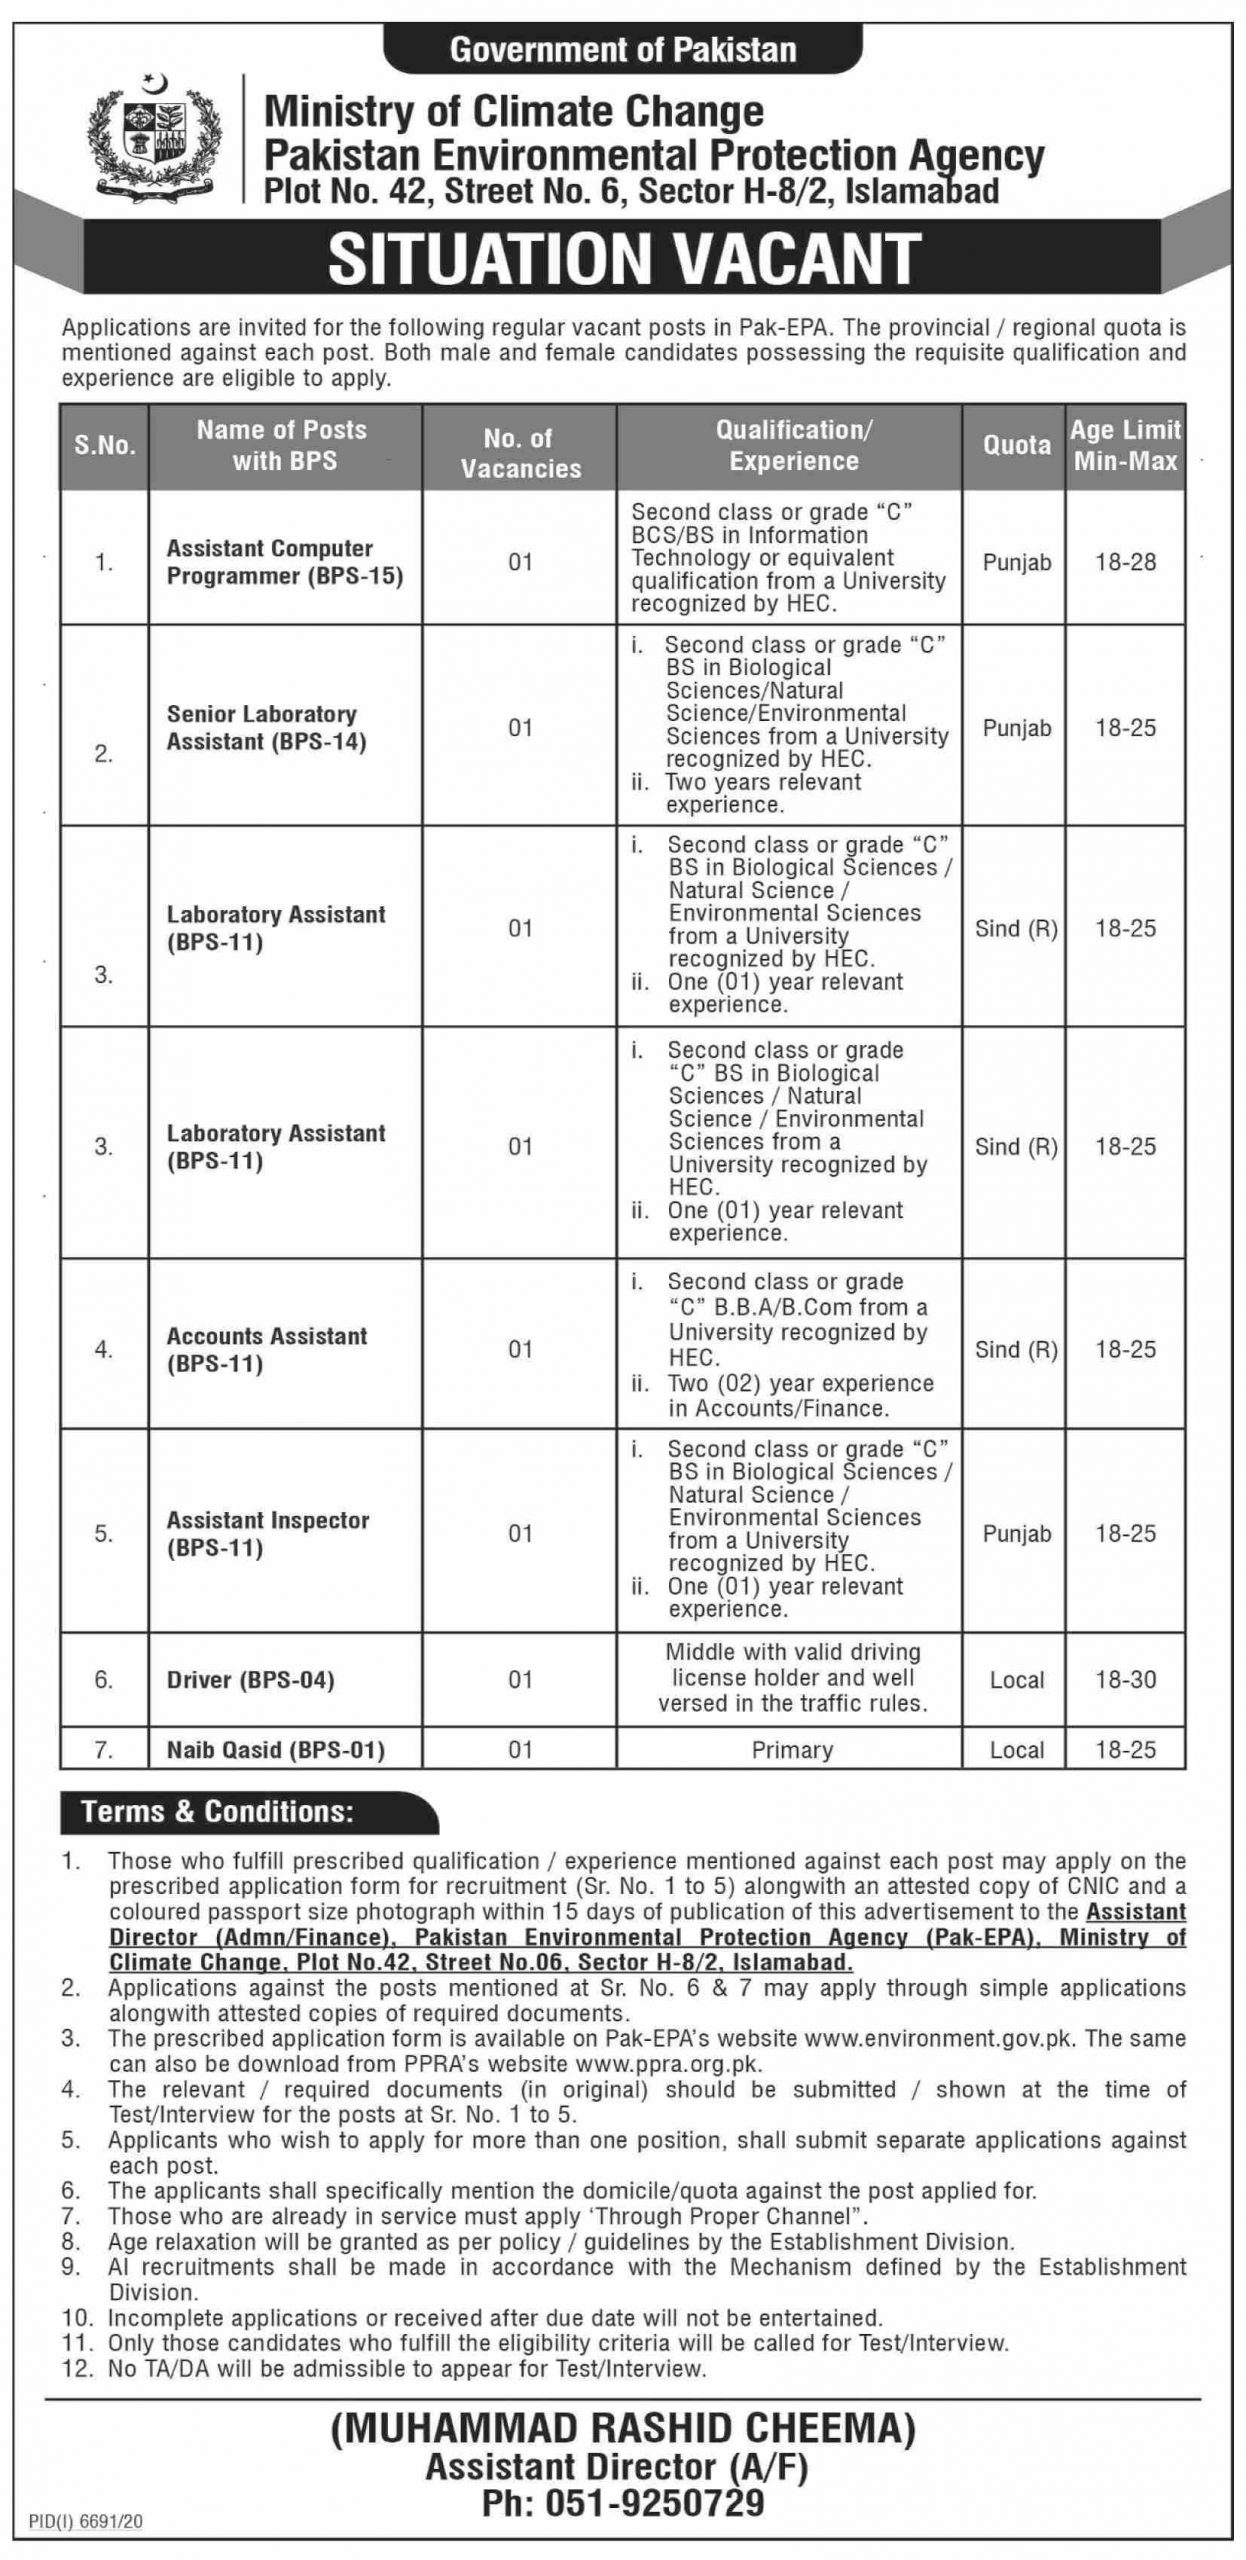 Government of Pakistan Ministry of Climate Change Jobs June 2021